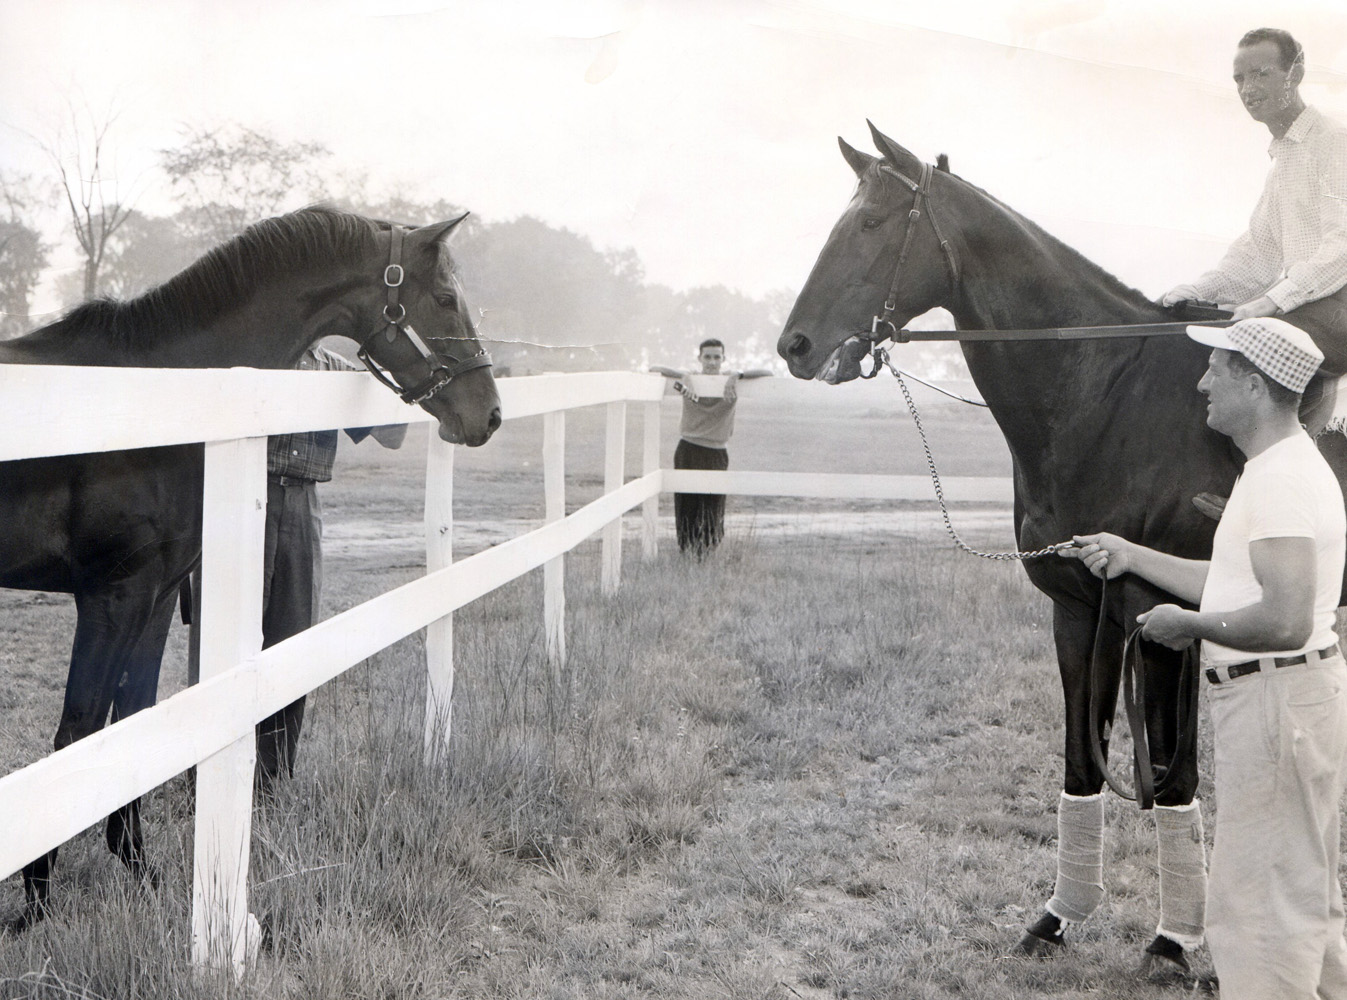 Gallant Man, left, visiting with fellow future Hall of Famer Bold Ruler, right, 1958 (Museum Collection)